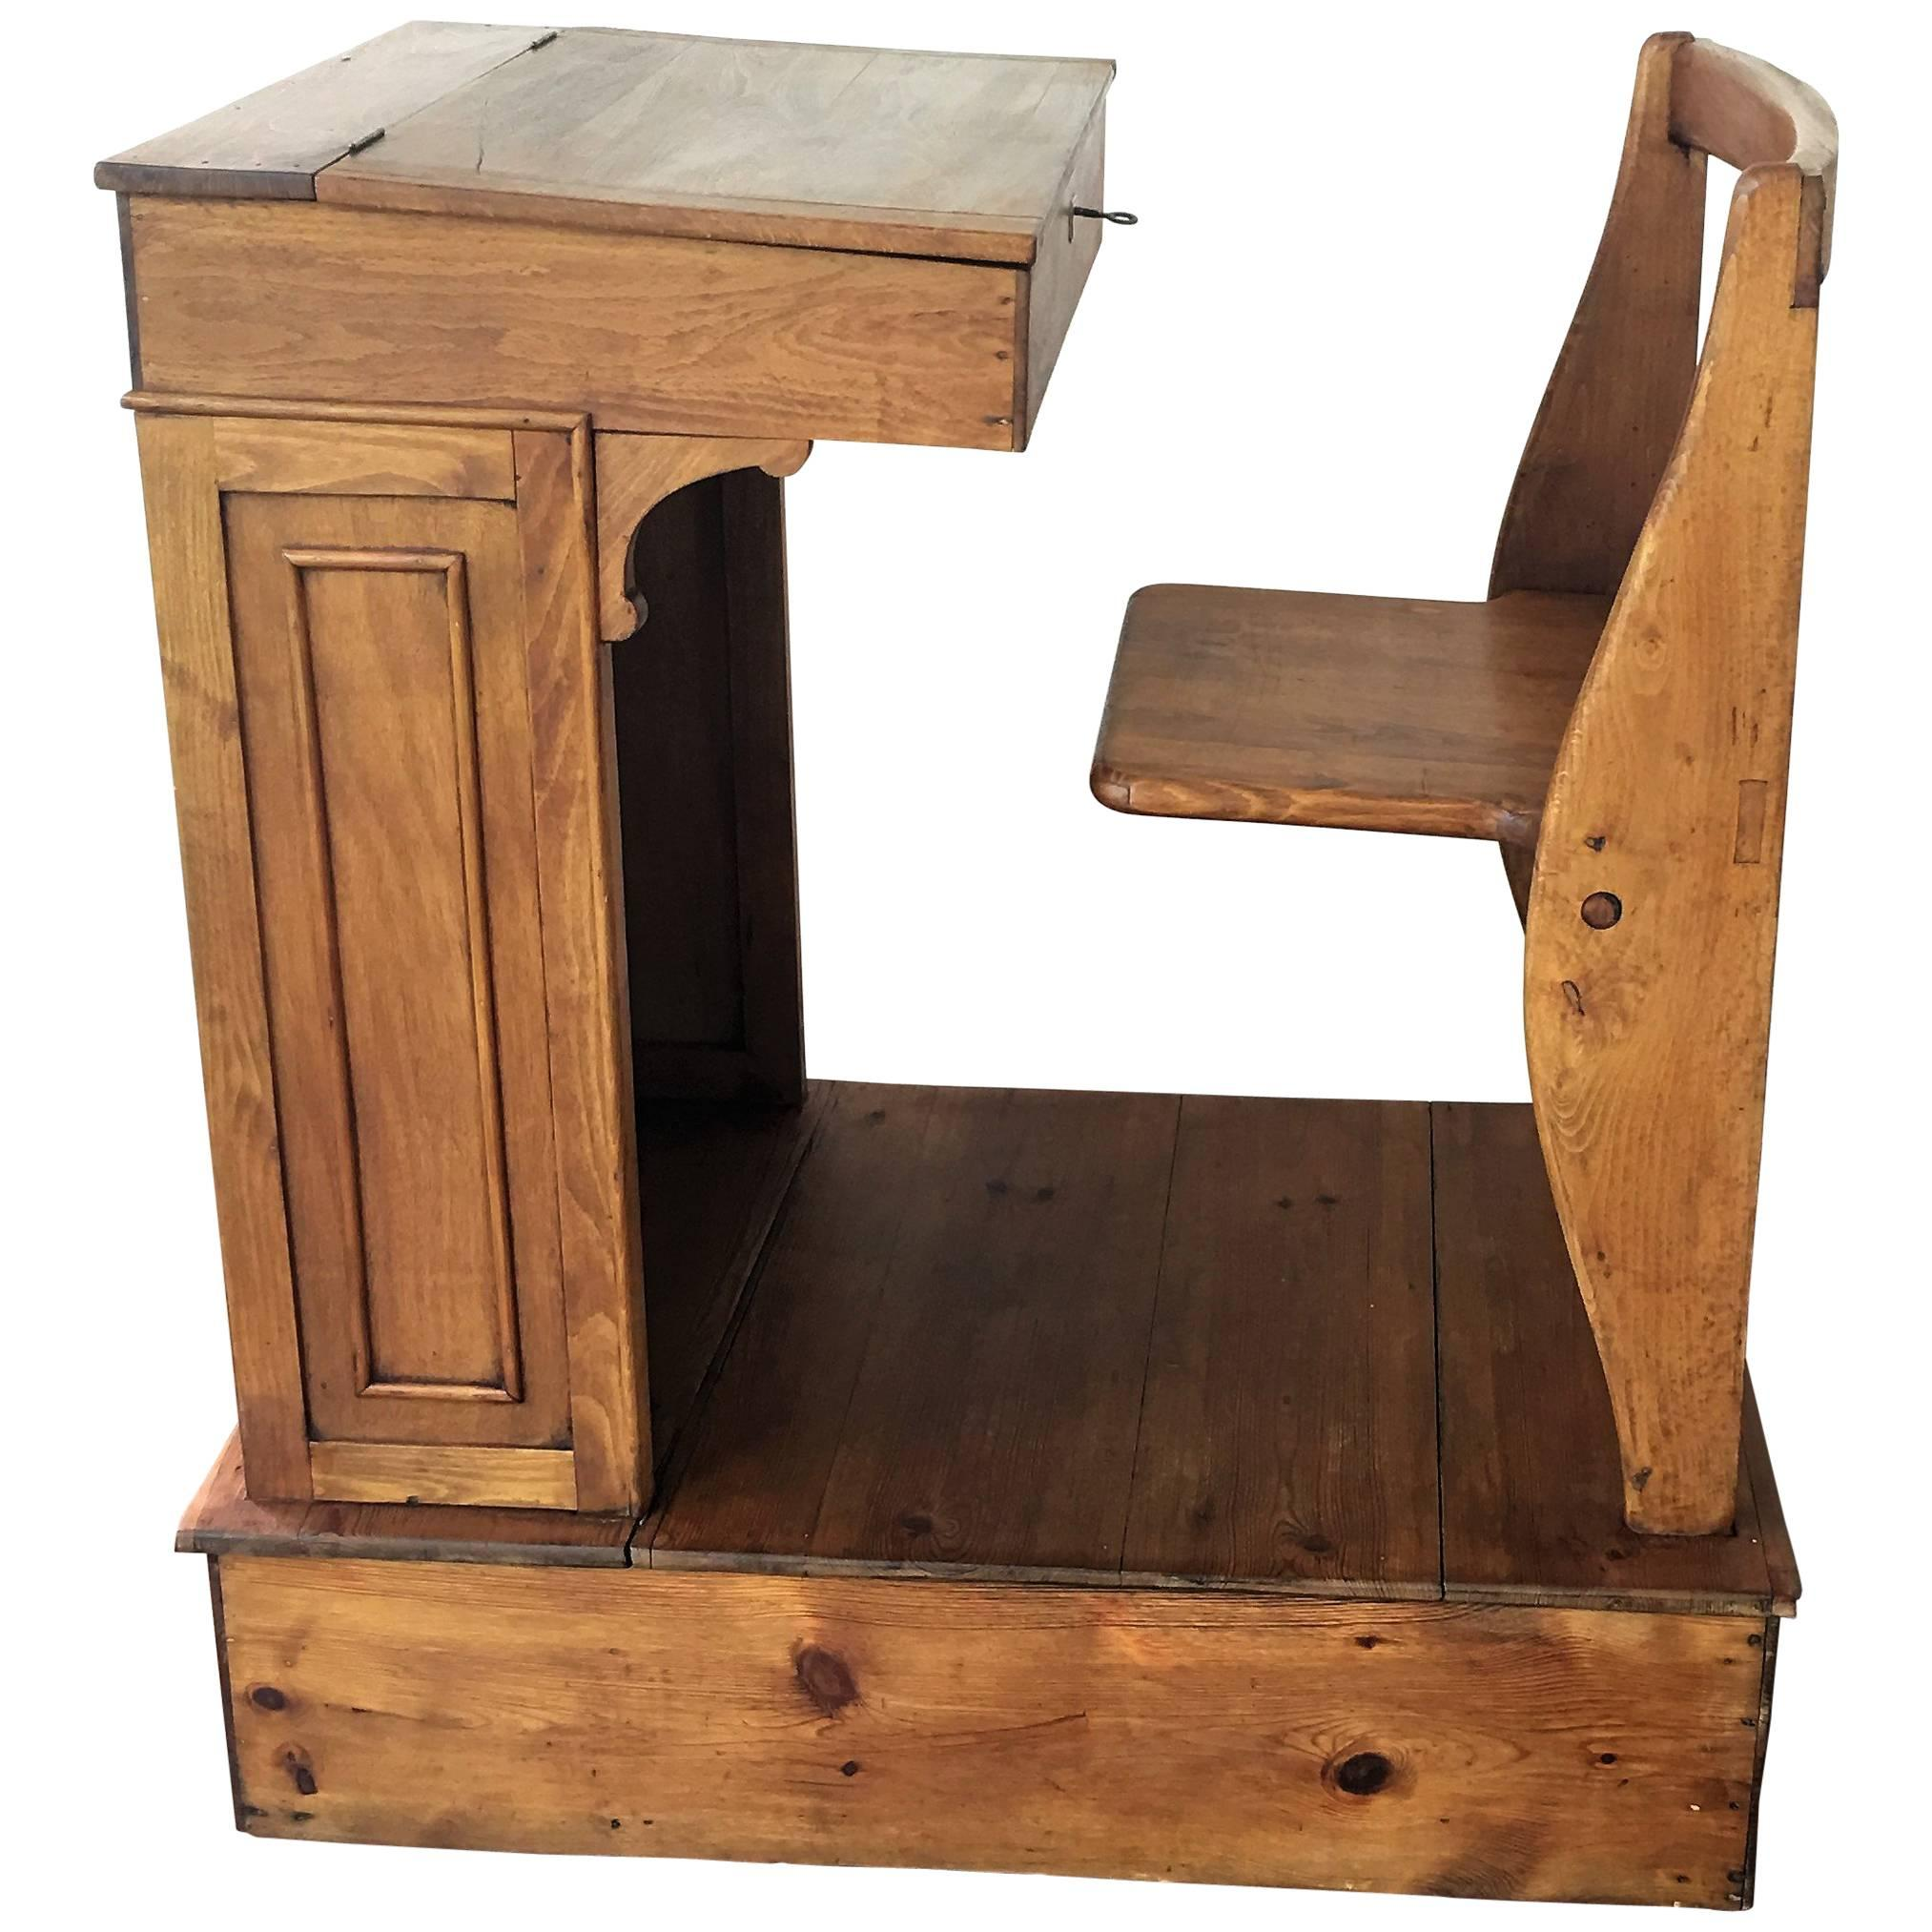 the revolving chair miami heated massage office 1940s children's adjustable spanish school desk in wood at 1stdibs